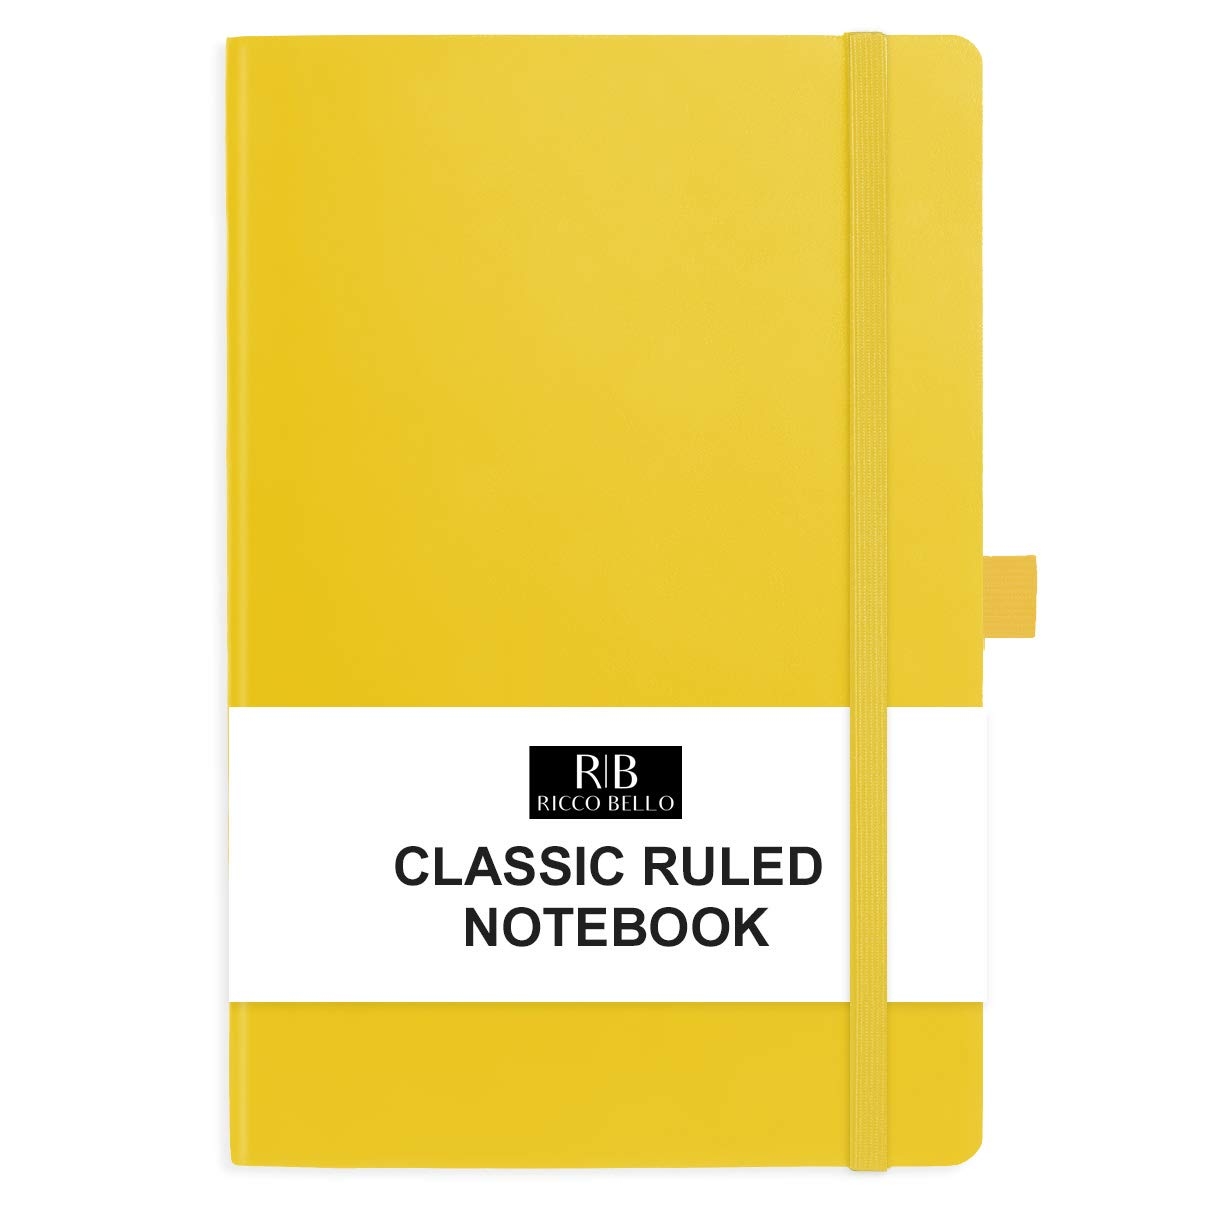 RICCO BELLO Classic College Ruled Hardcover Journal Notebook, Elastic Band Closure, Pen Holder, Vegan Leather, 5.7 x 8.4 inches (Yellow)